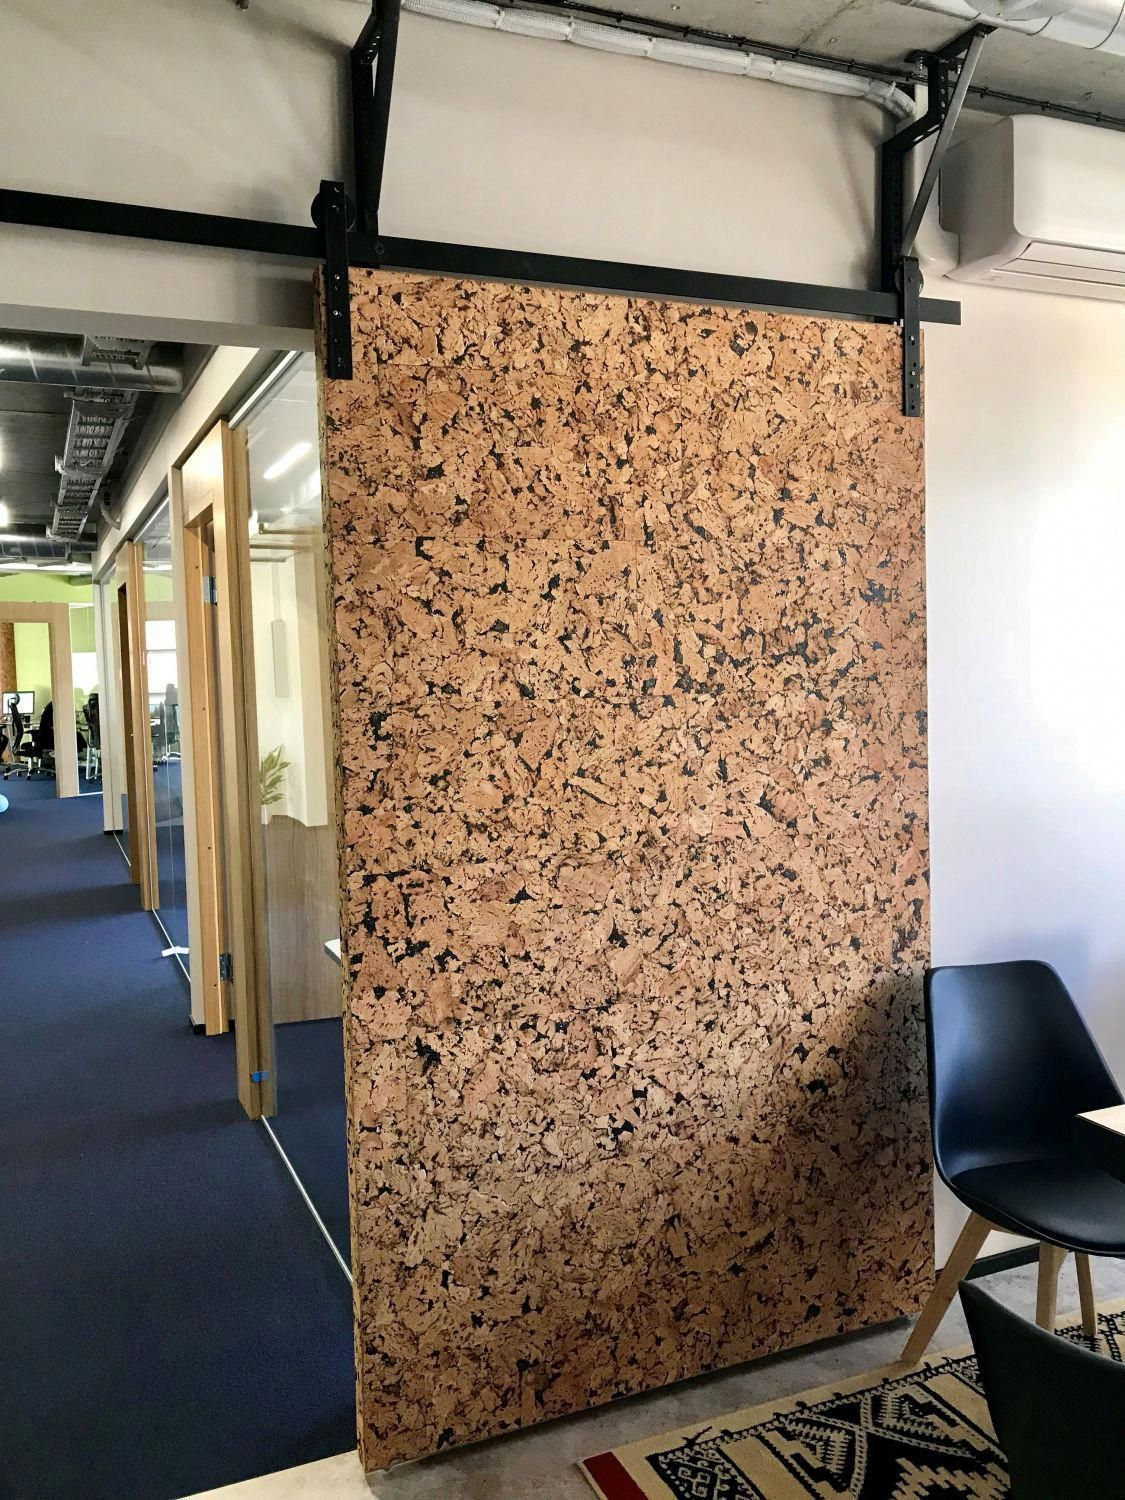 Cork Wall Tiles Improve The Microclimate Of The Interior Reducing The Noise Level Inside The Apartment And Make The Cork Wall Cork Wall Tiles Cork Wall Panels